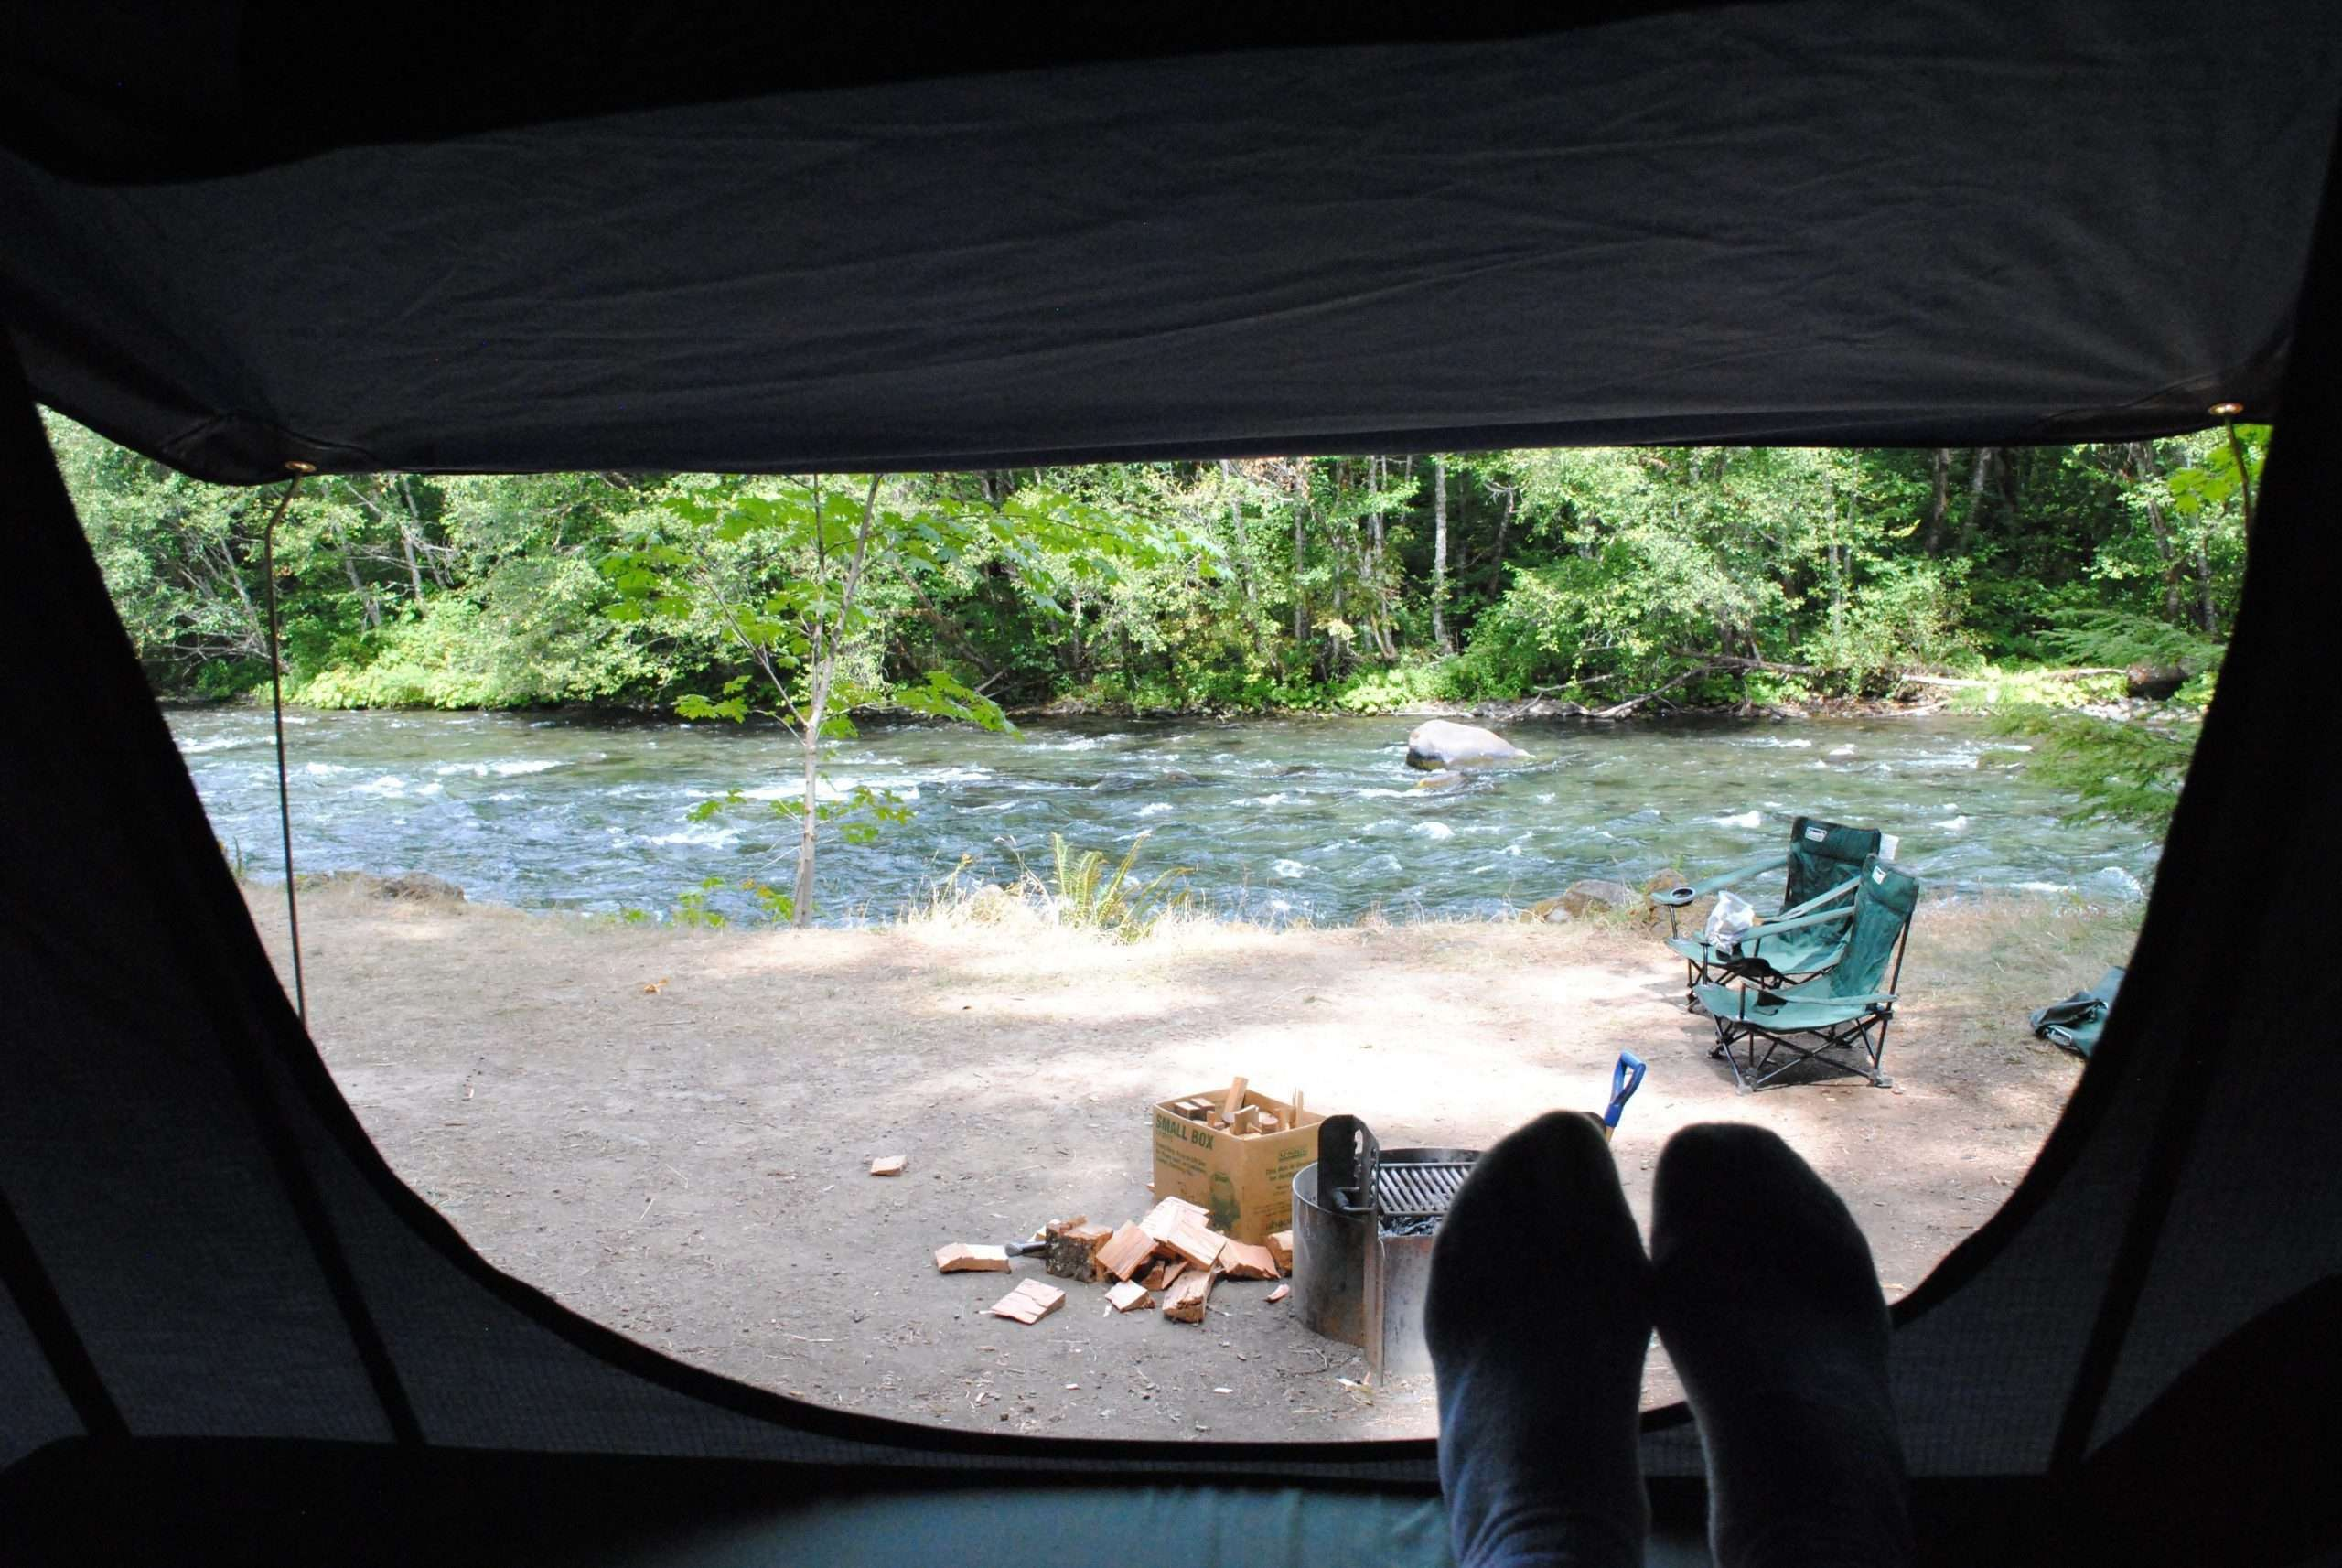 Jeep Trailer camping at mckenzie river